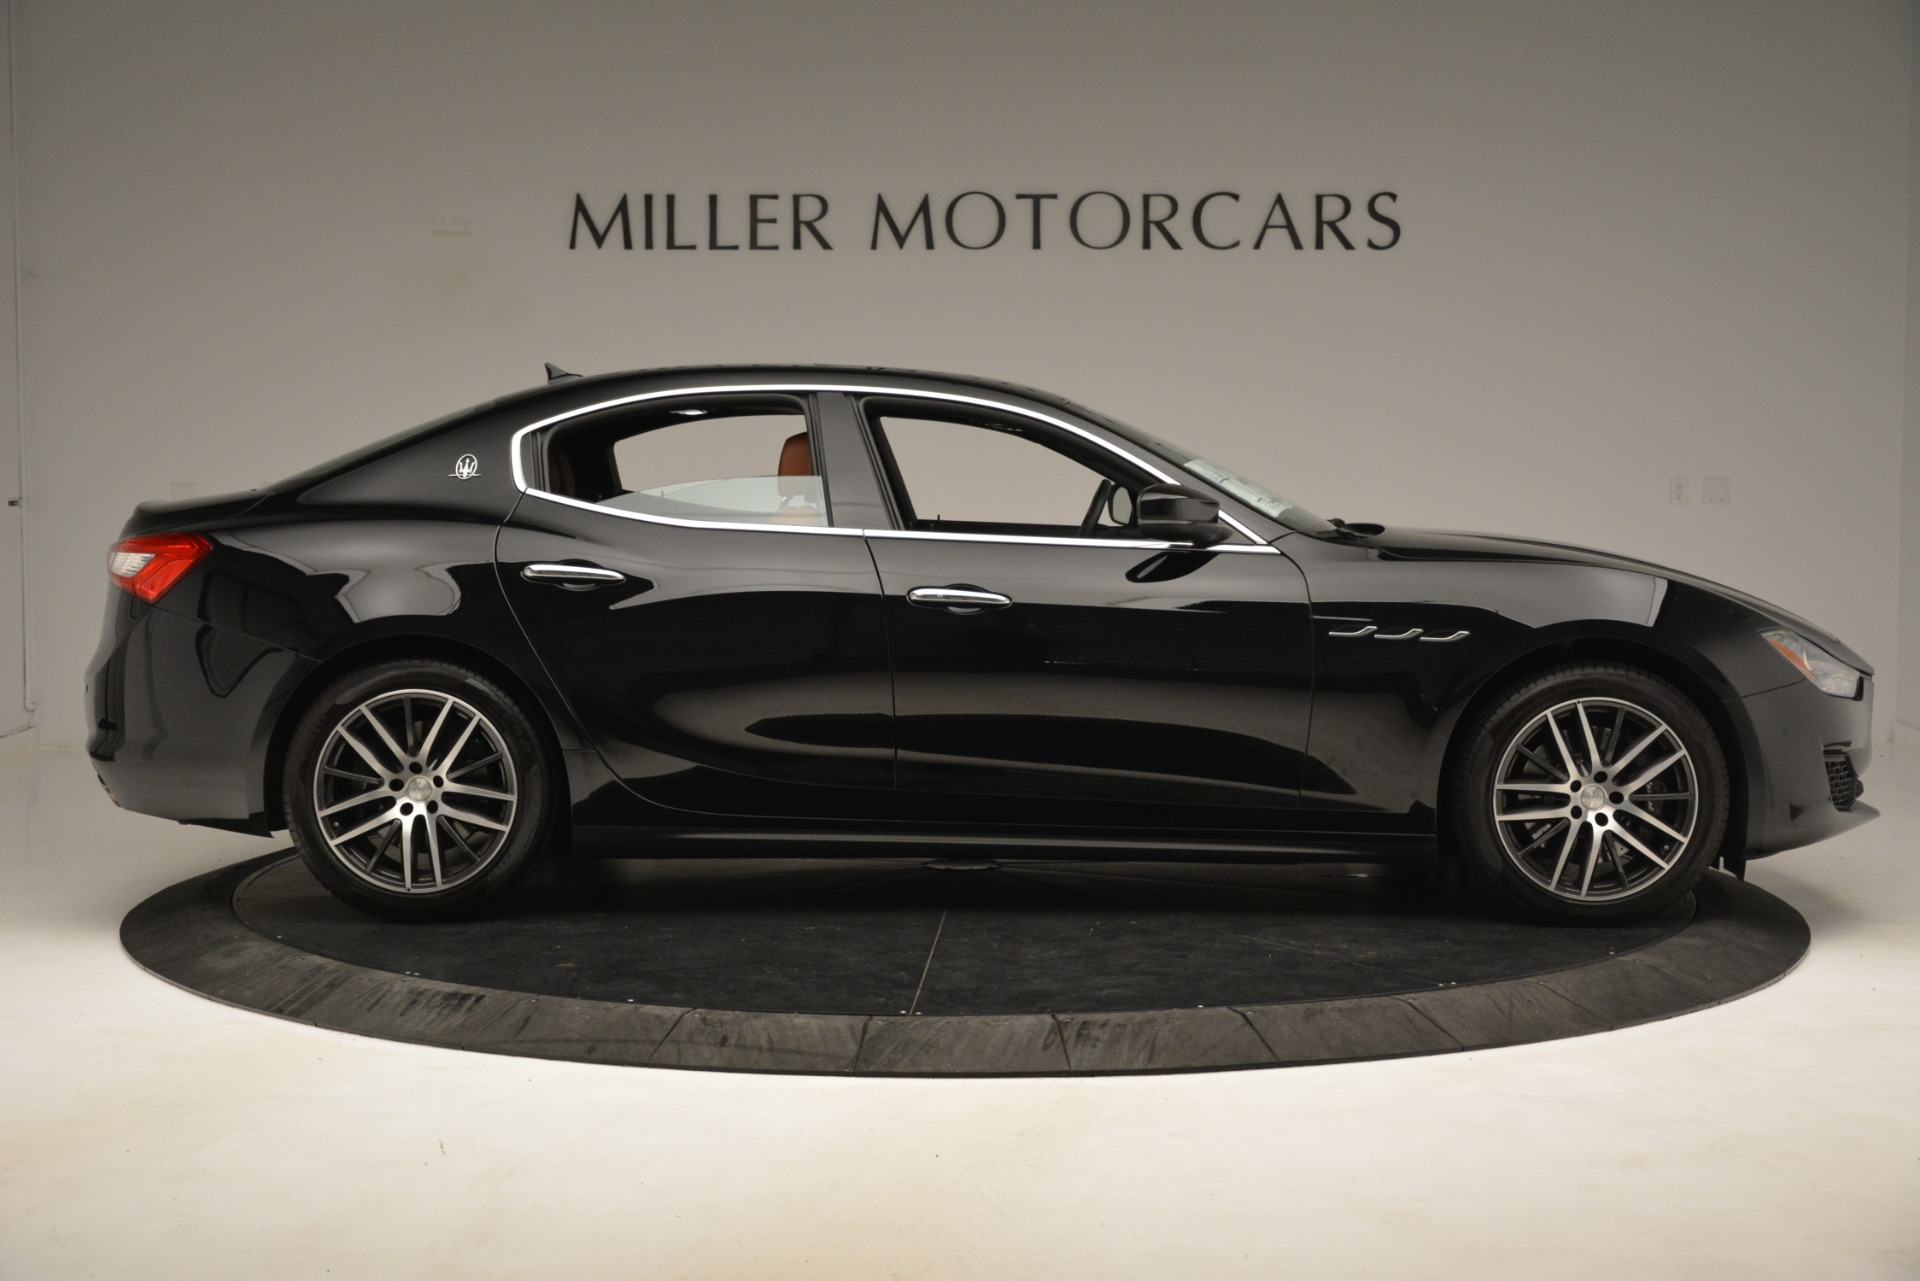 New 2019 Maserati Ghibli S Q4 For Sale In Westport, CT 2793_p9